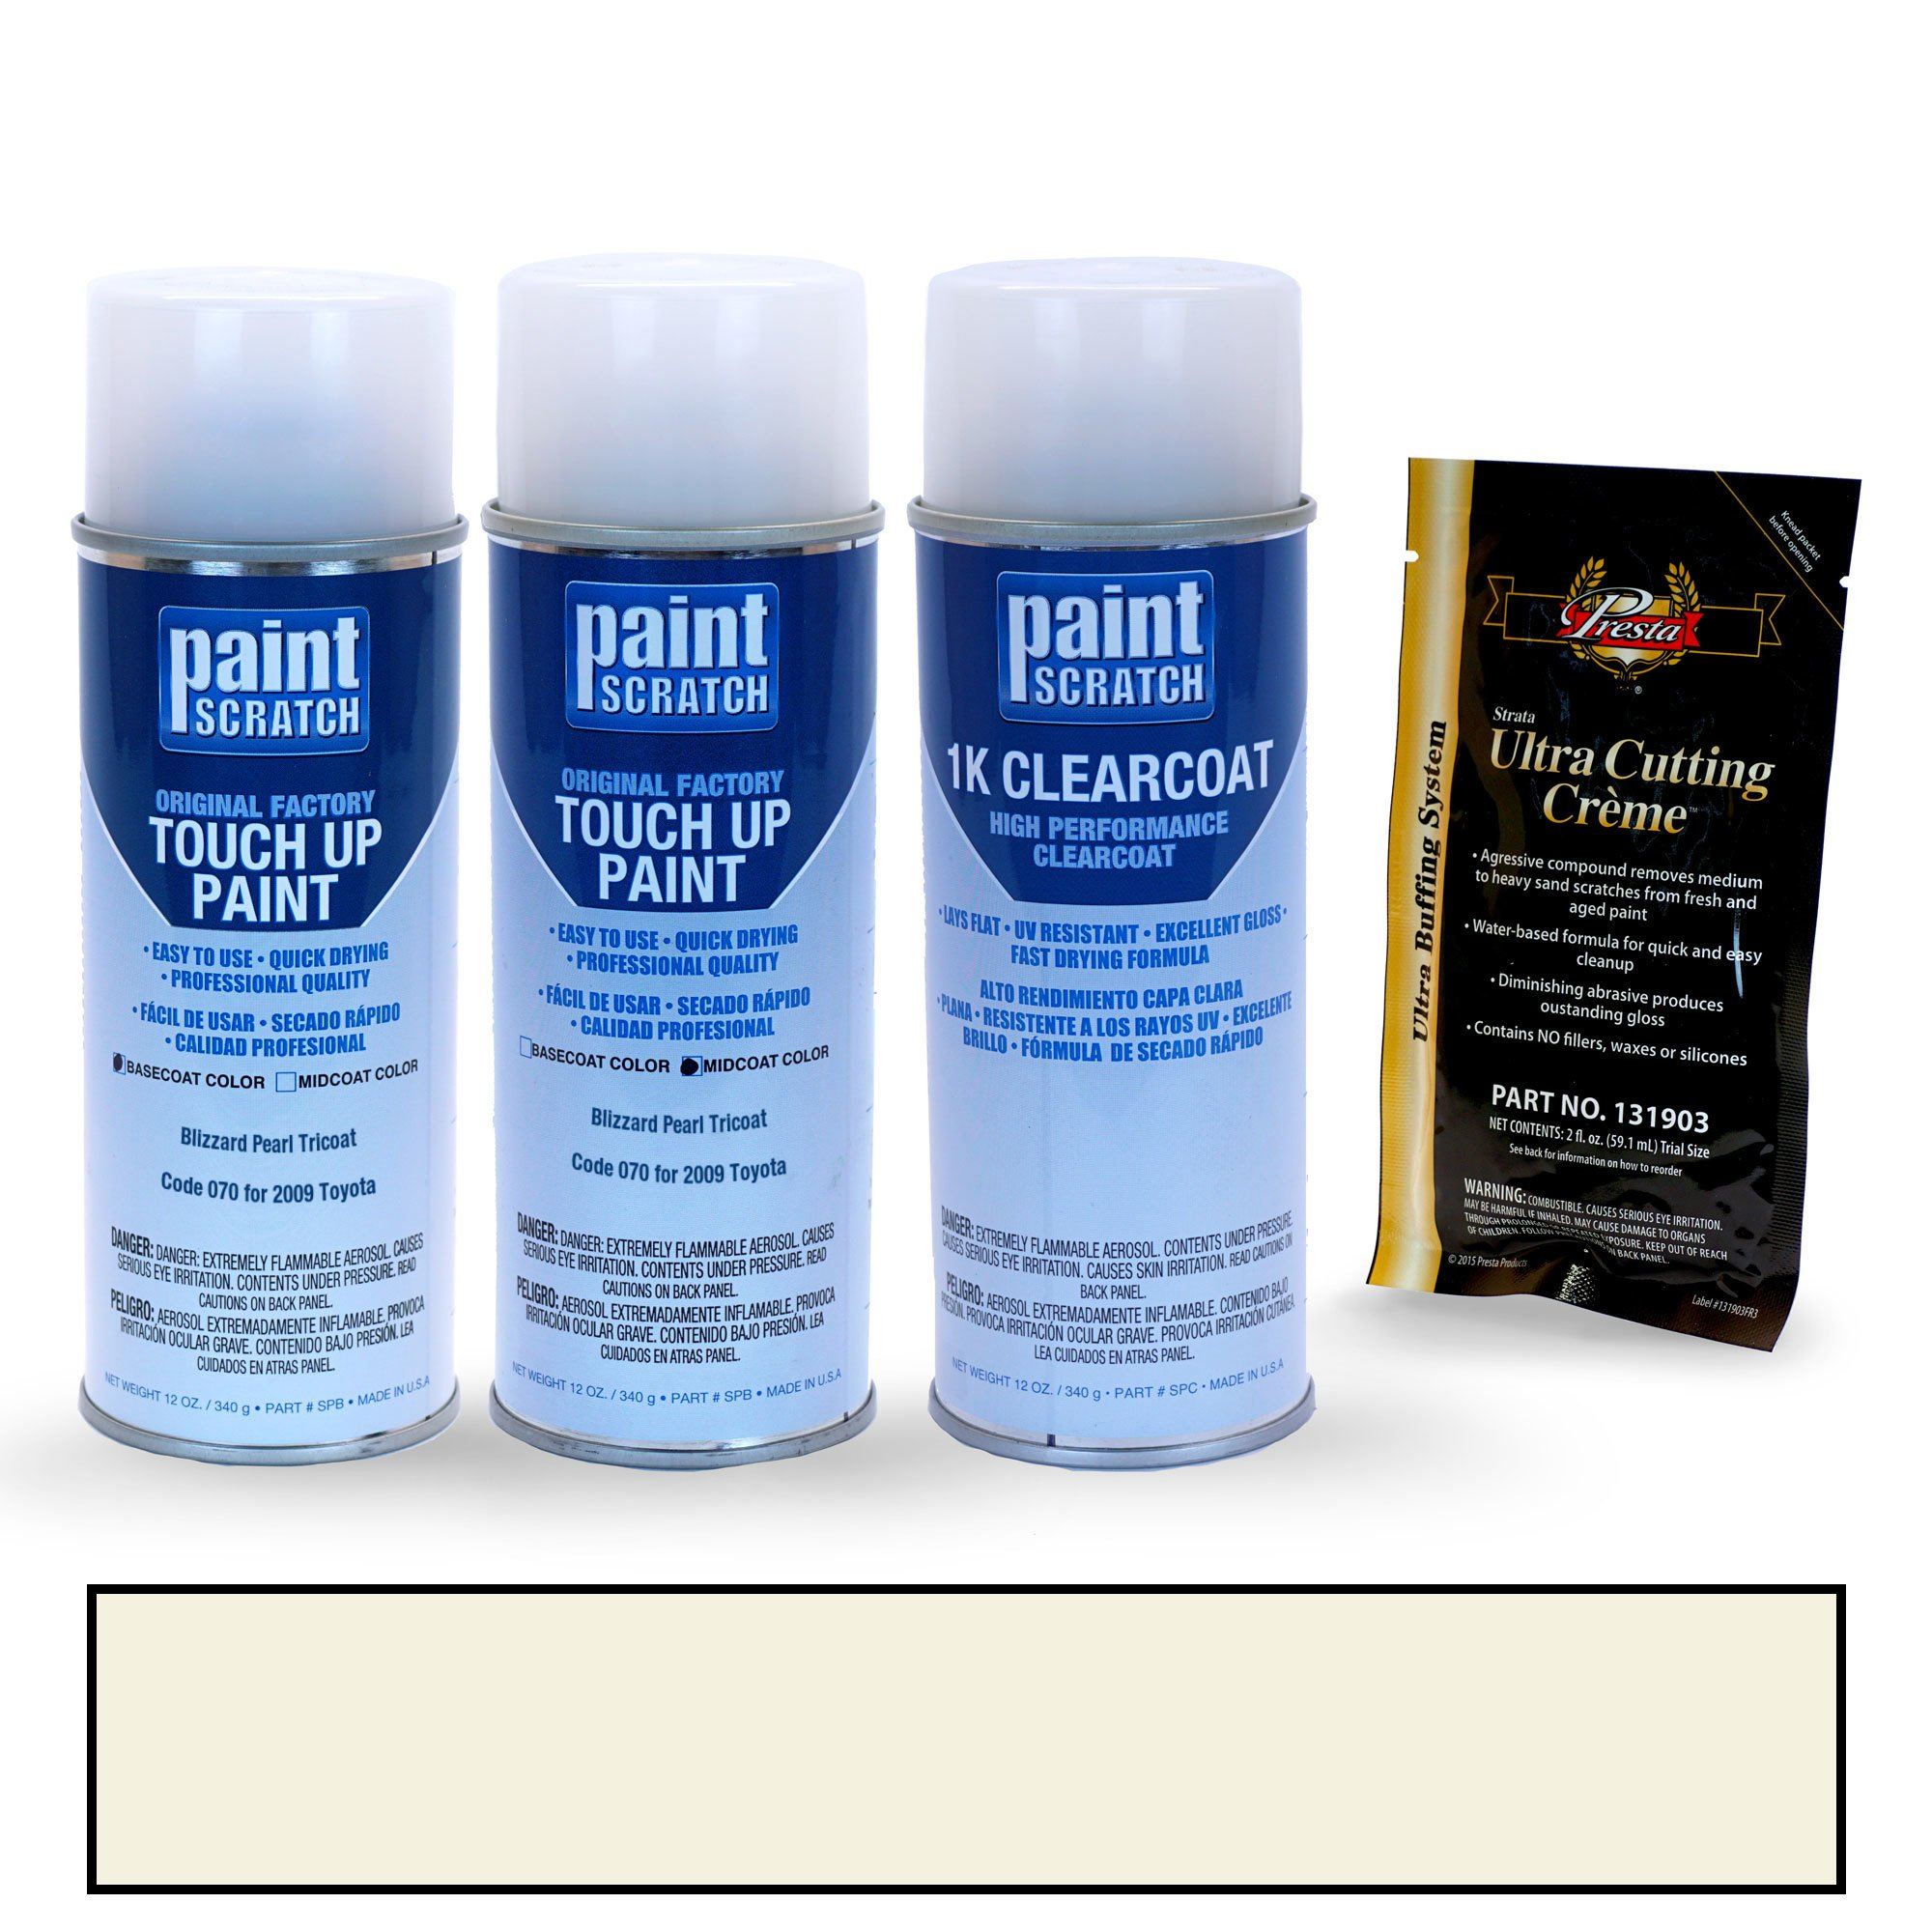 PAINTSCRATCH Blizzard Pearl Tricoat 070 for 2009 Toyota Prius - Touch Up Paint Spray Can Kit - Original Factory OEM Automotive Paint - Color Match Guaranteed